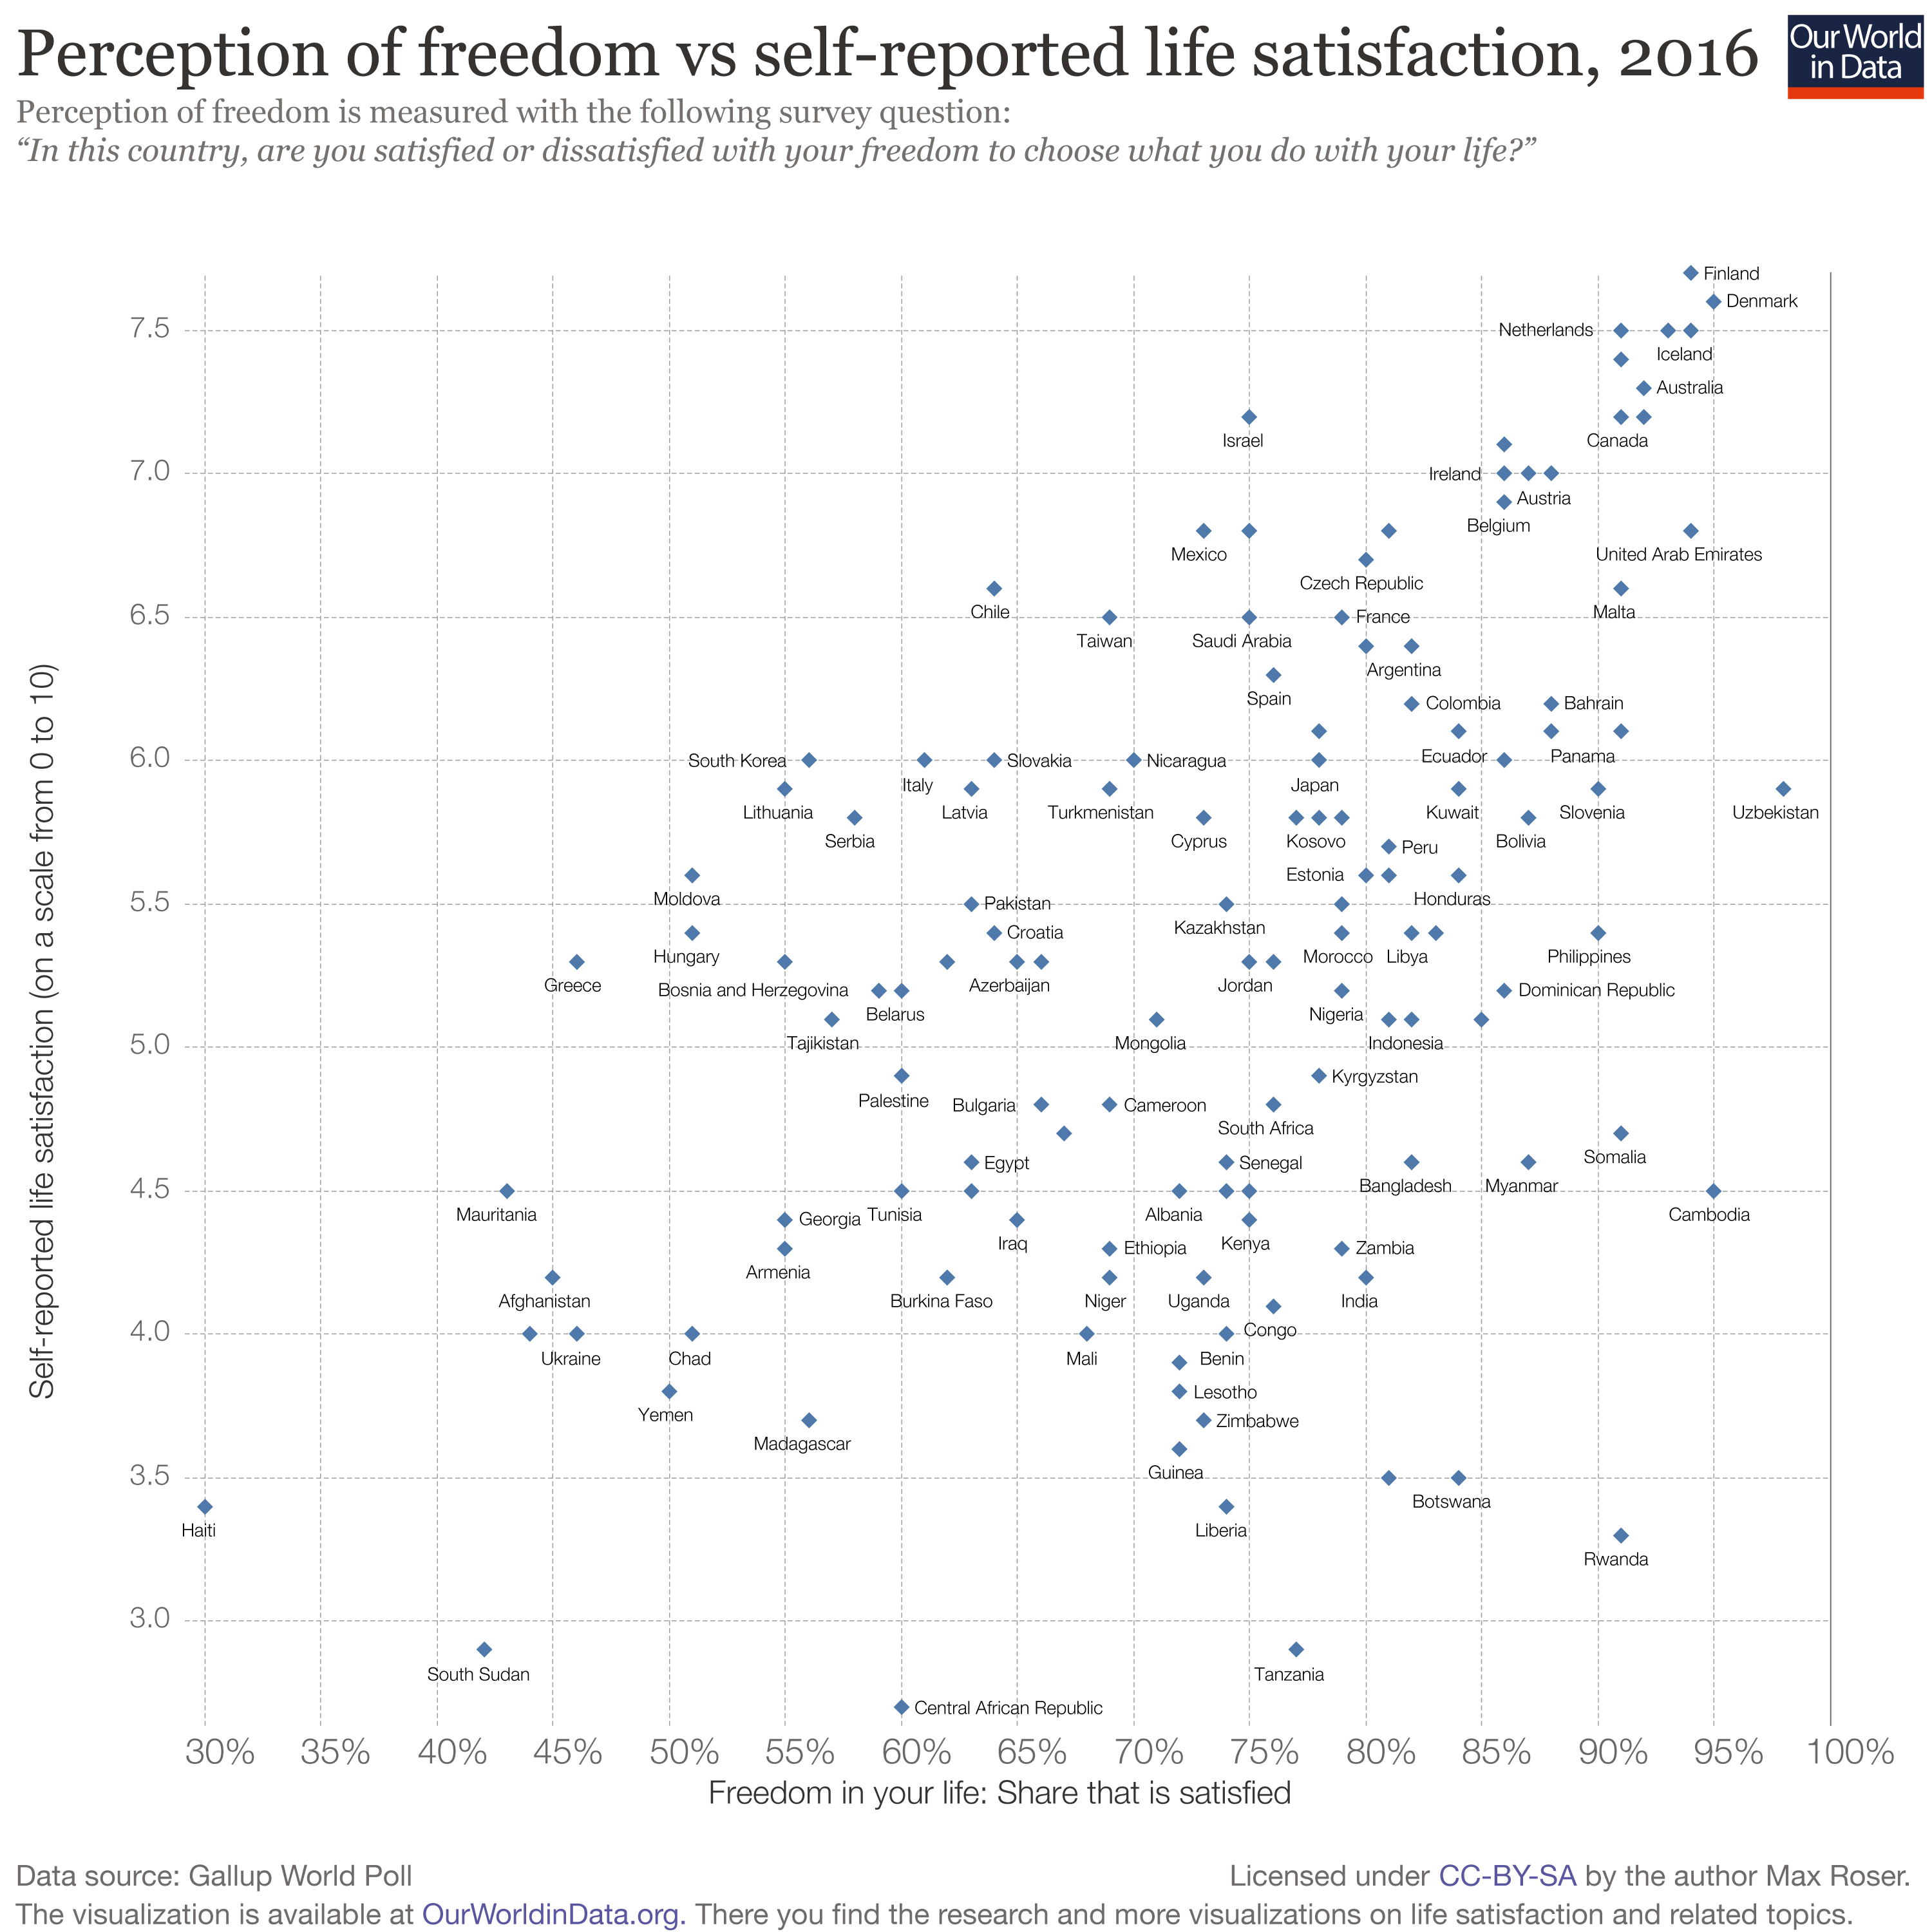 Perception of freedom vs self-reported life satisfaction, 2016